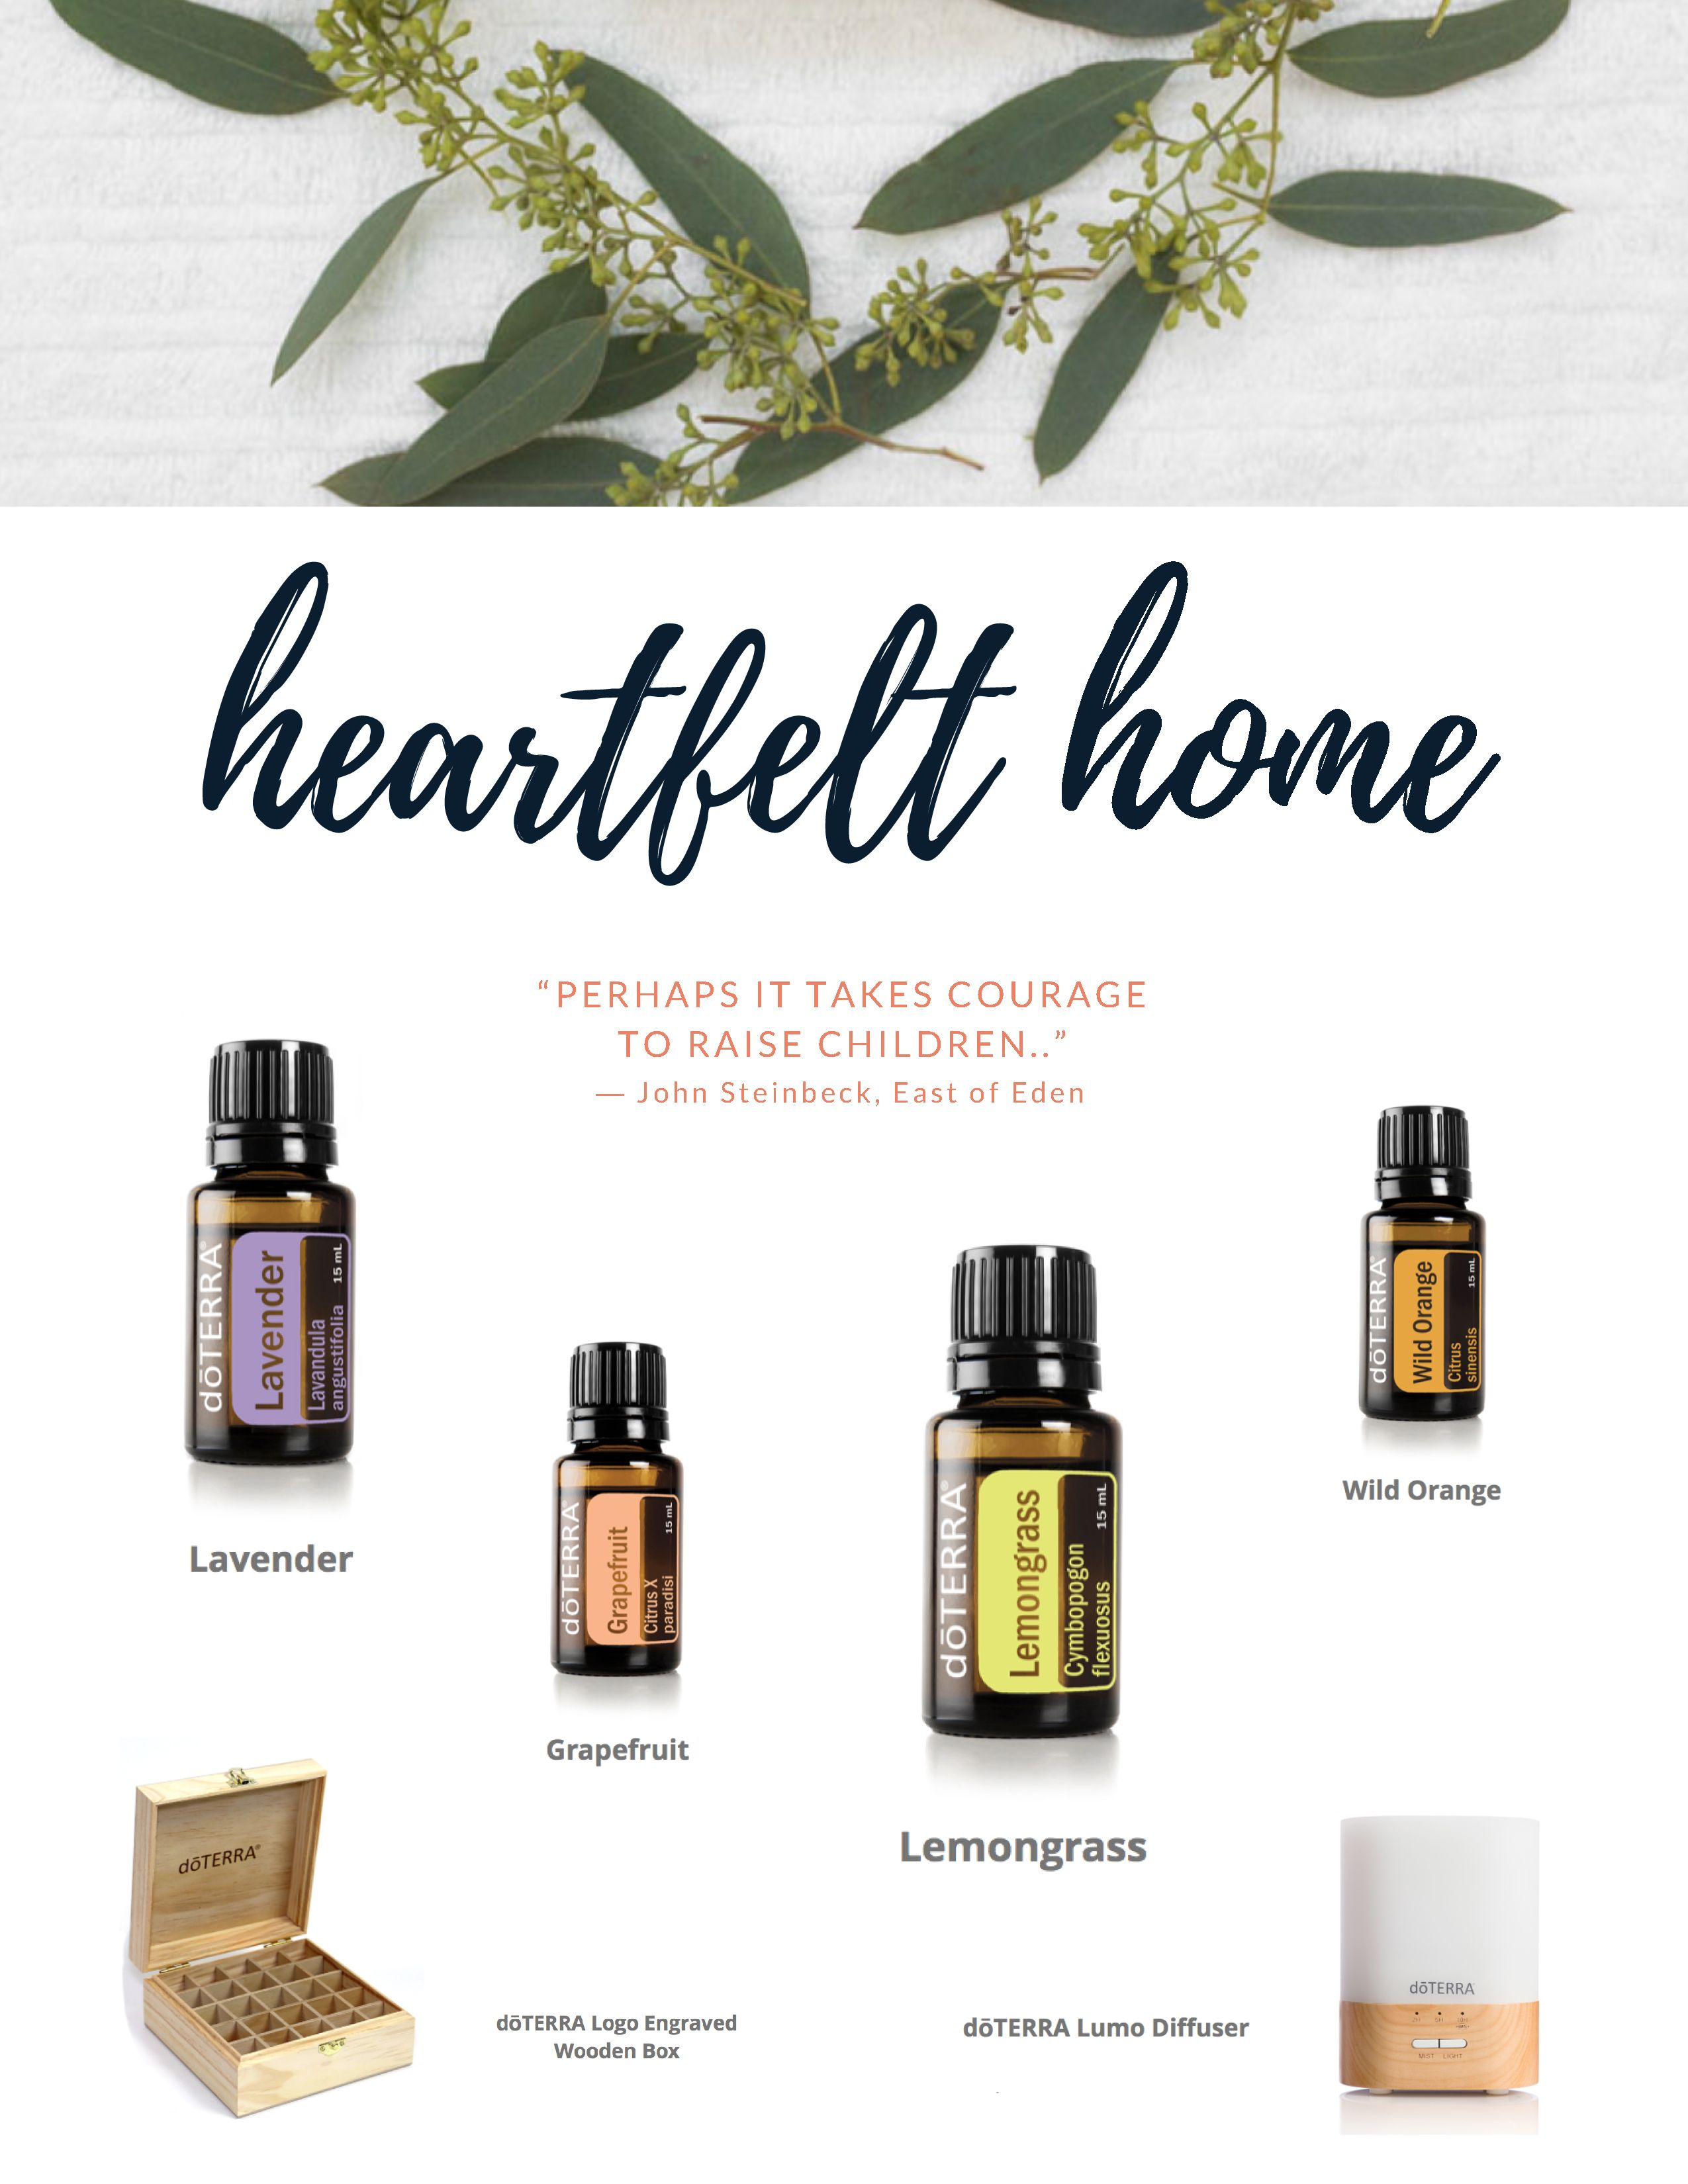 Favorite essential oils for the home